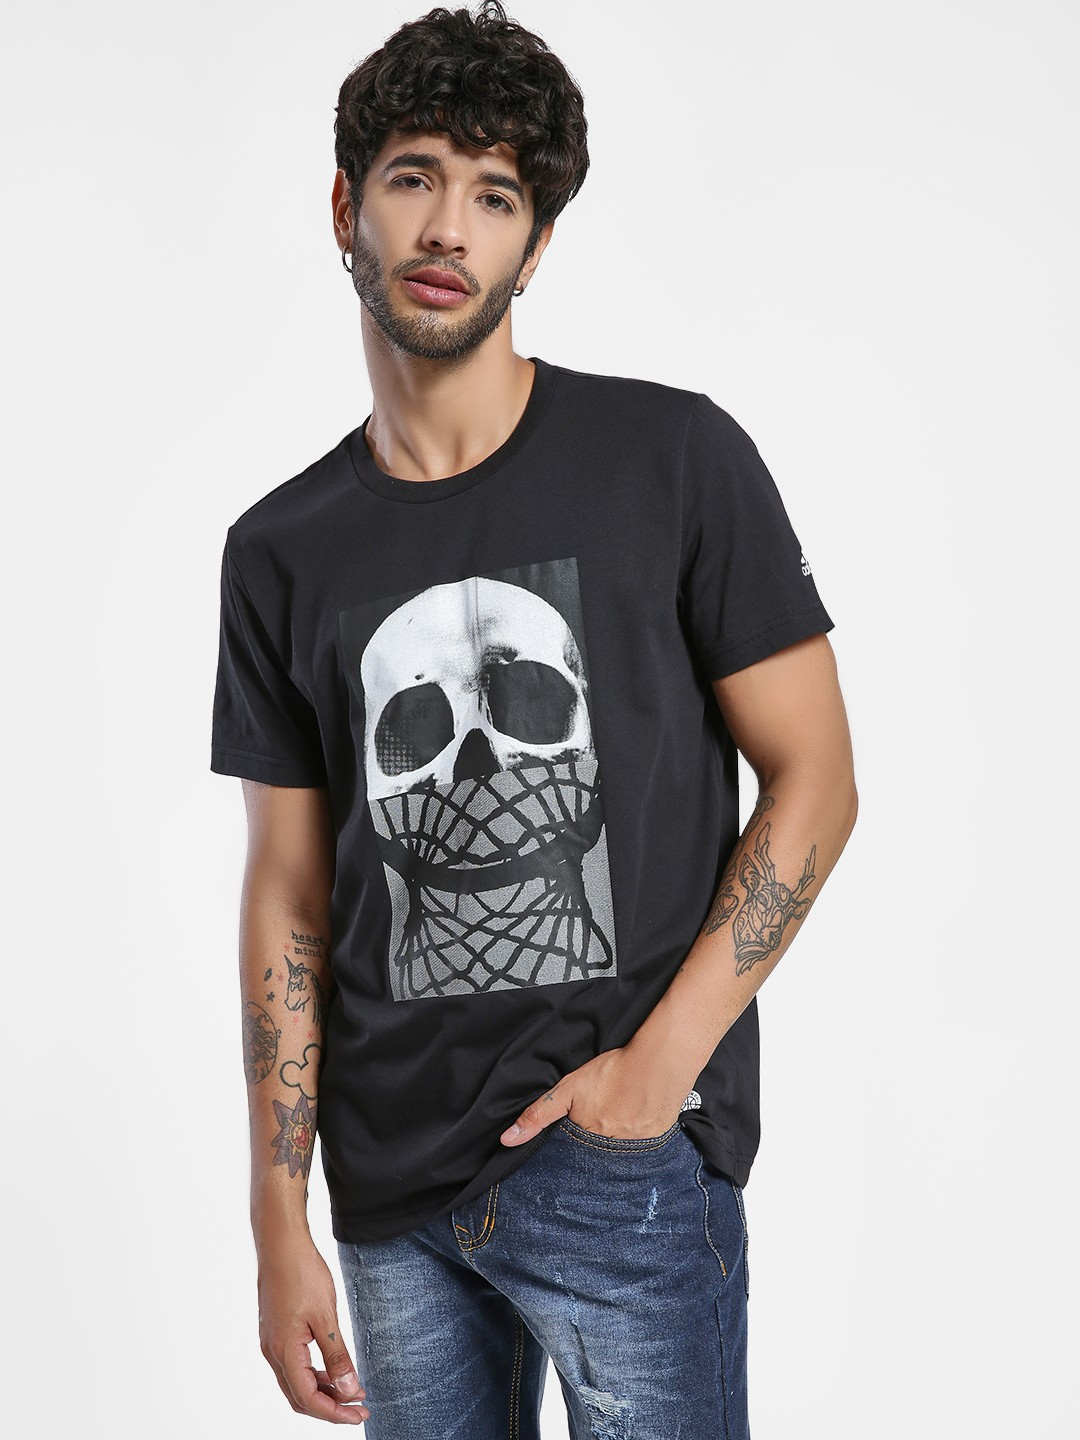 Adidas Black Skull And Net T-Shirt 1